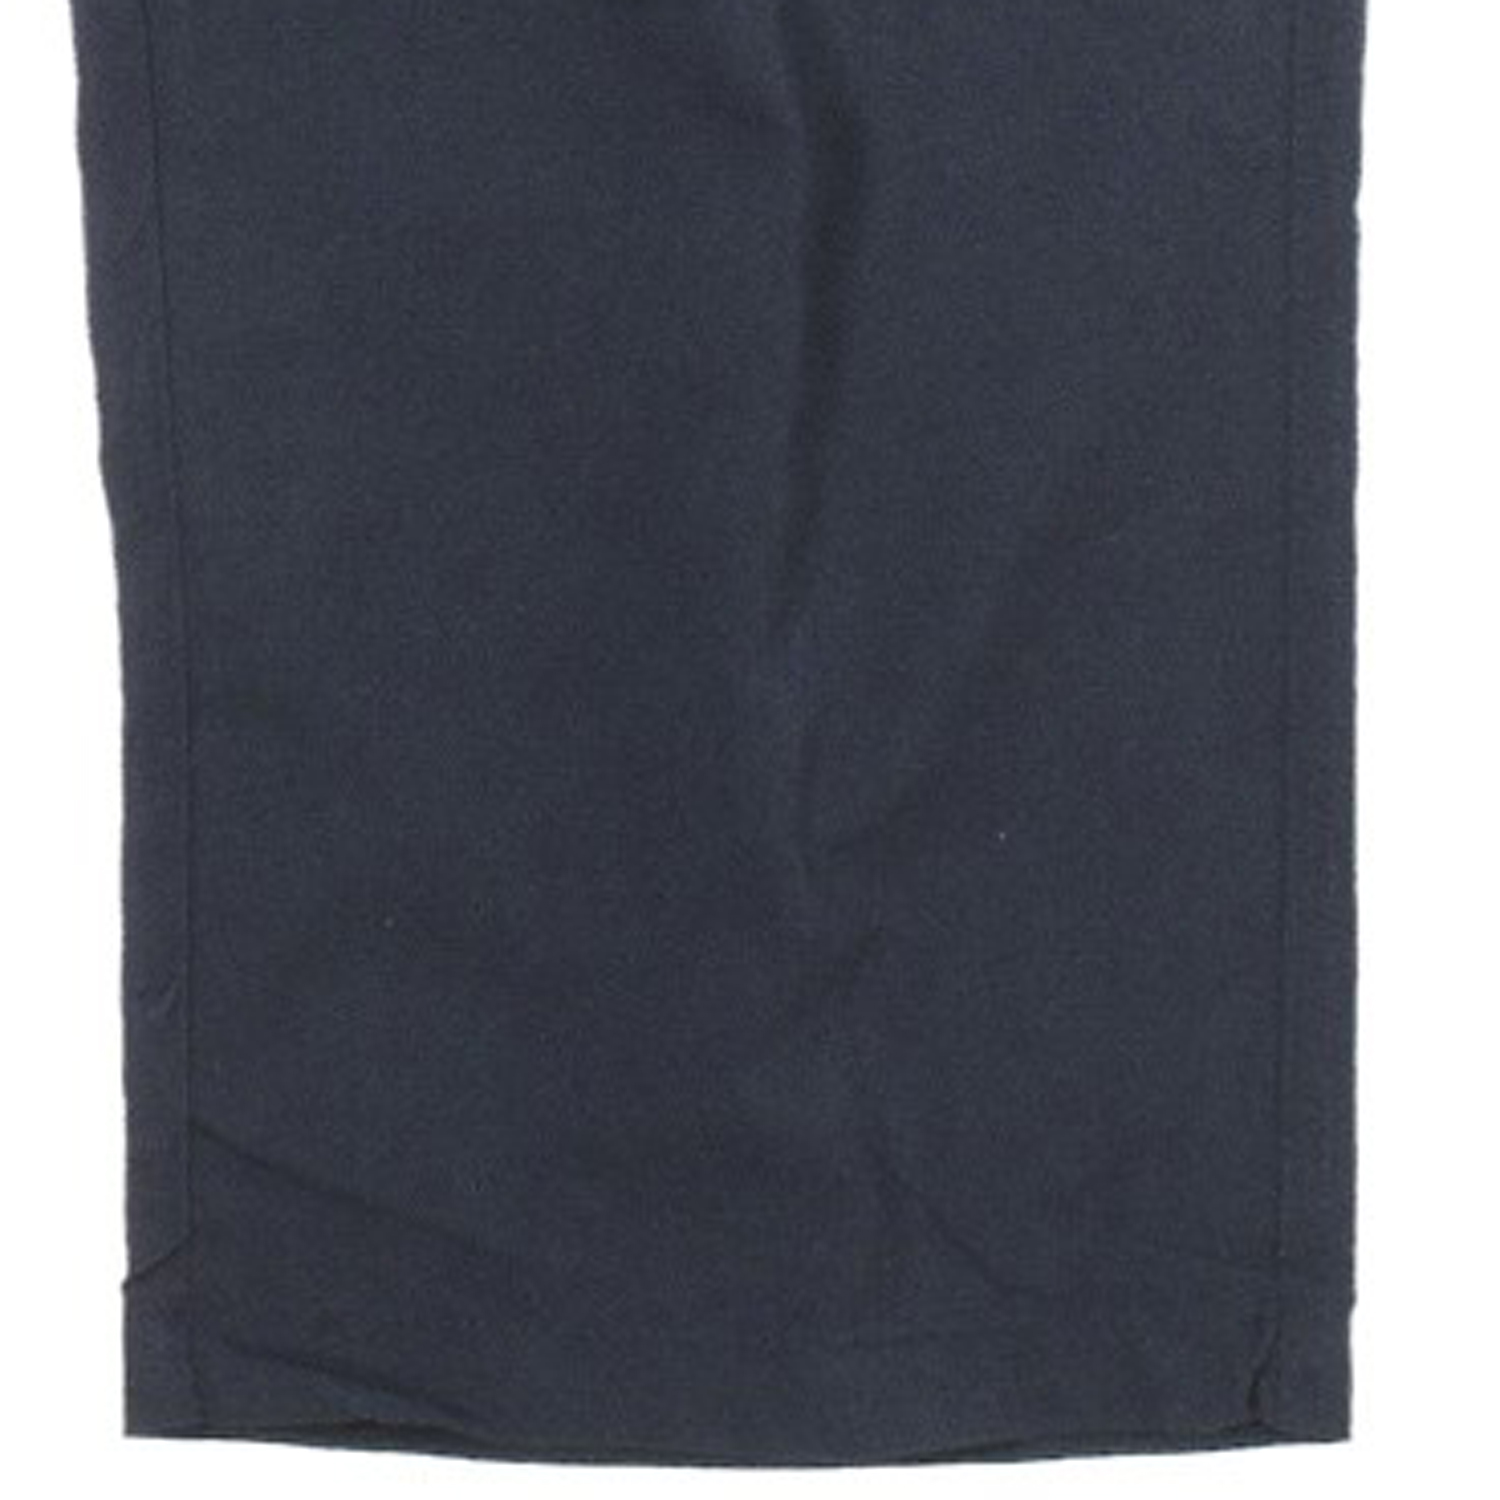 Detail Image to Micro fitness pants in dark blue by Ahorn Sportswear up to oversize 10XL